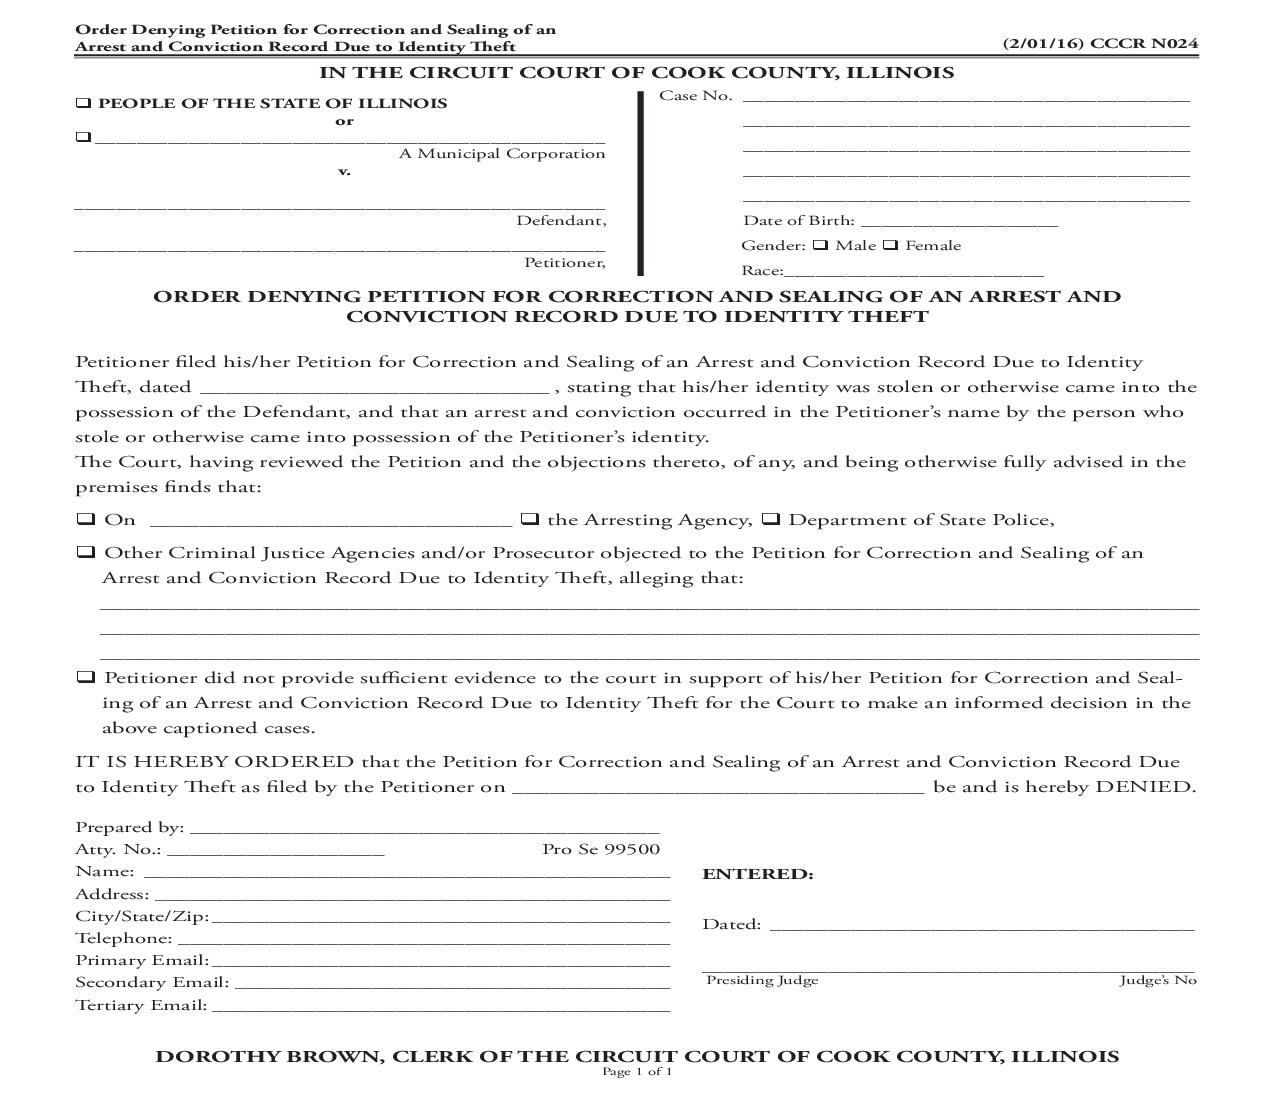 Order Denying Petition For Correction And Sealing Of An Arrest And Conviction Record Due To Identity Theft {CCCR N024} | Pdf Fpdf Doc Docx | Illinois